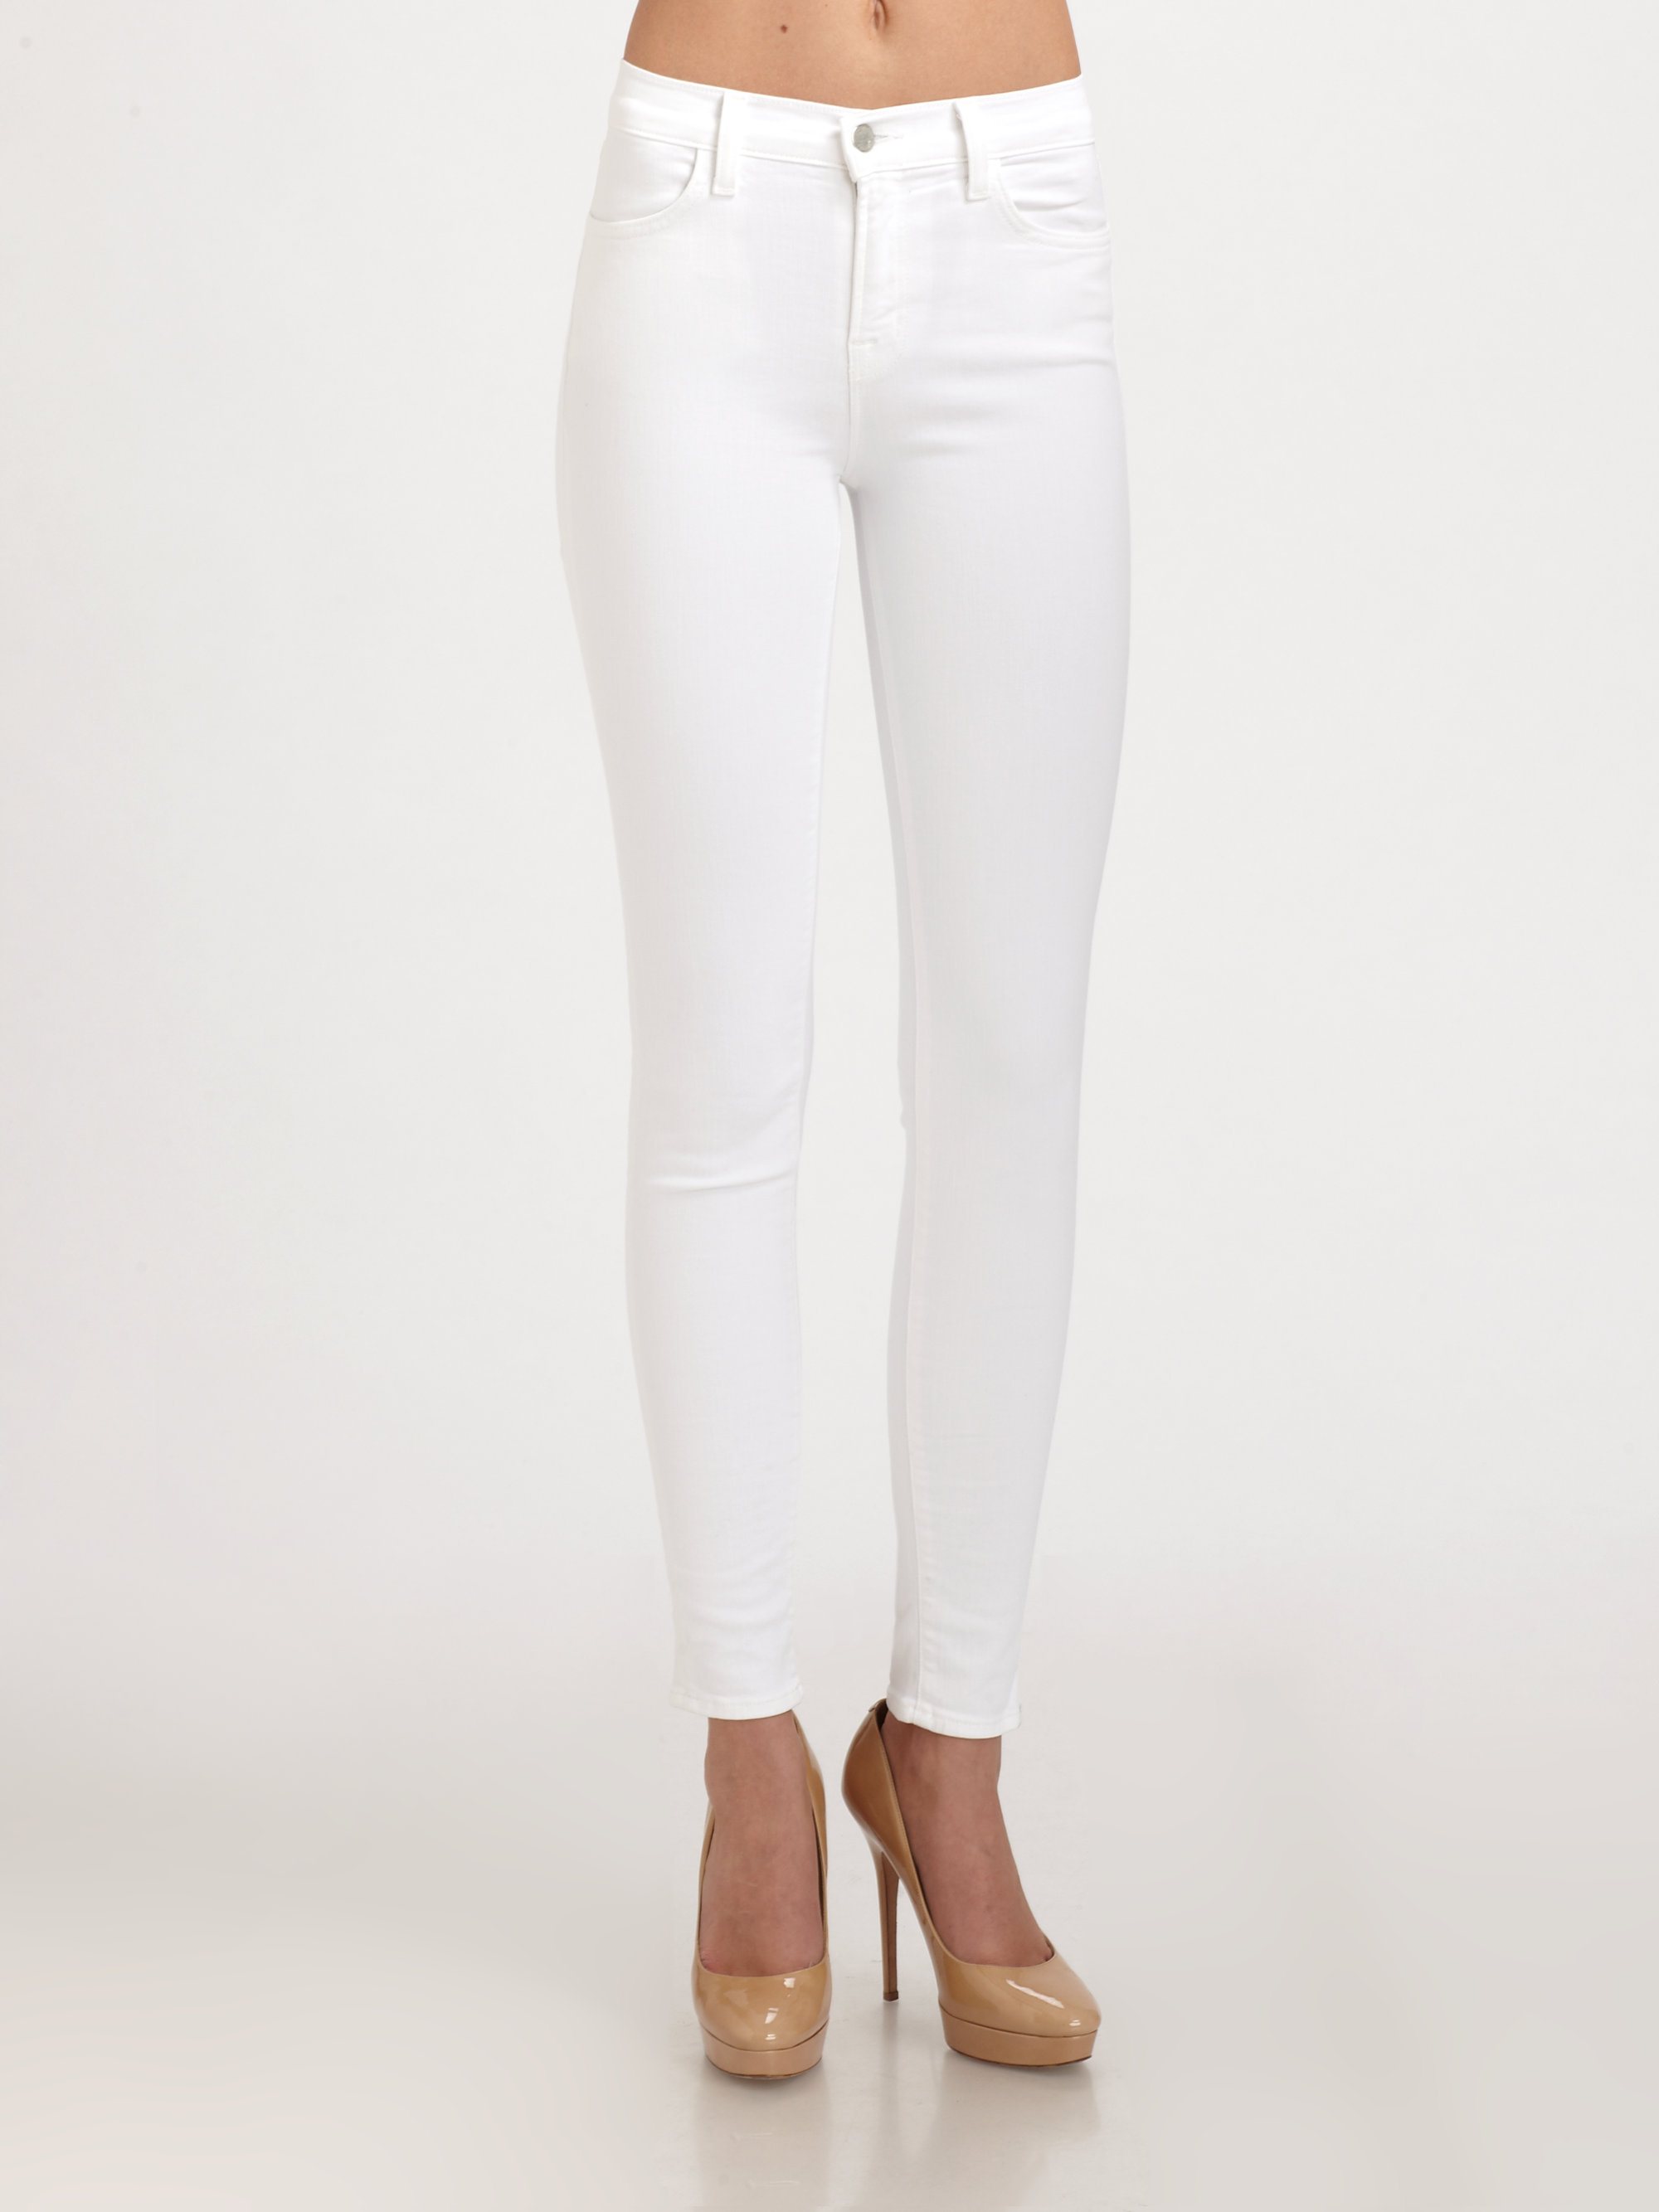 j brand maria high rise skinny jeans in white lyst. Black Bedroom Furniture Sets. Home Design Ideas